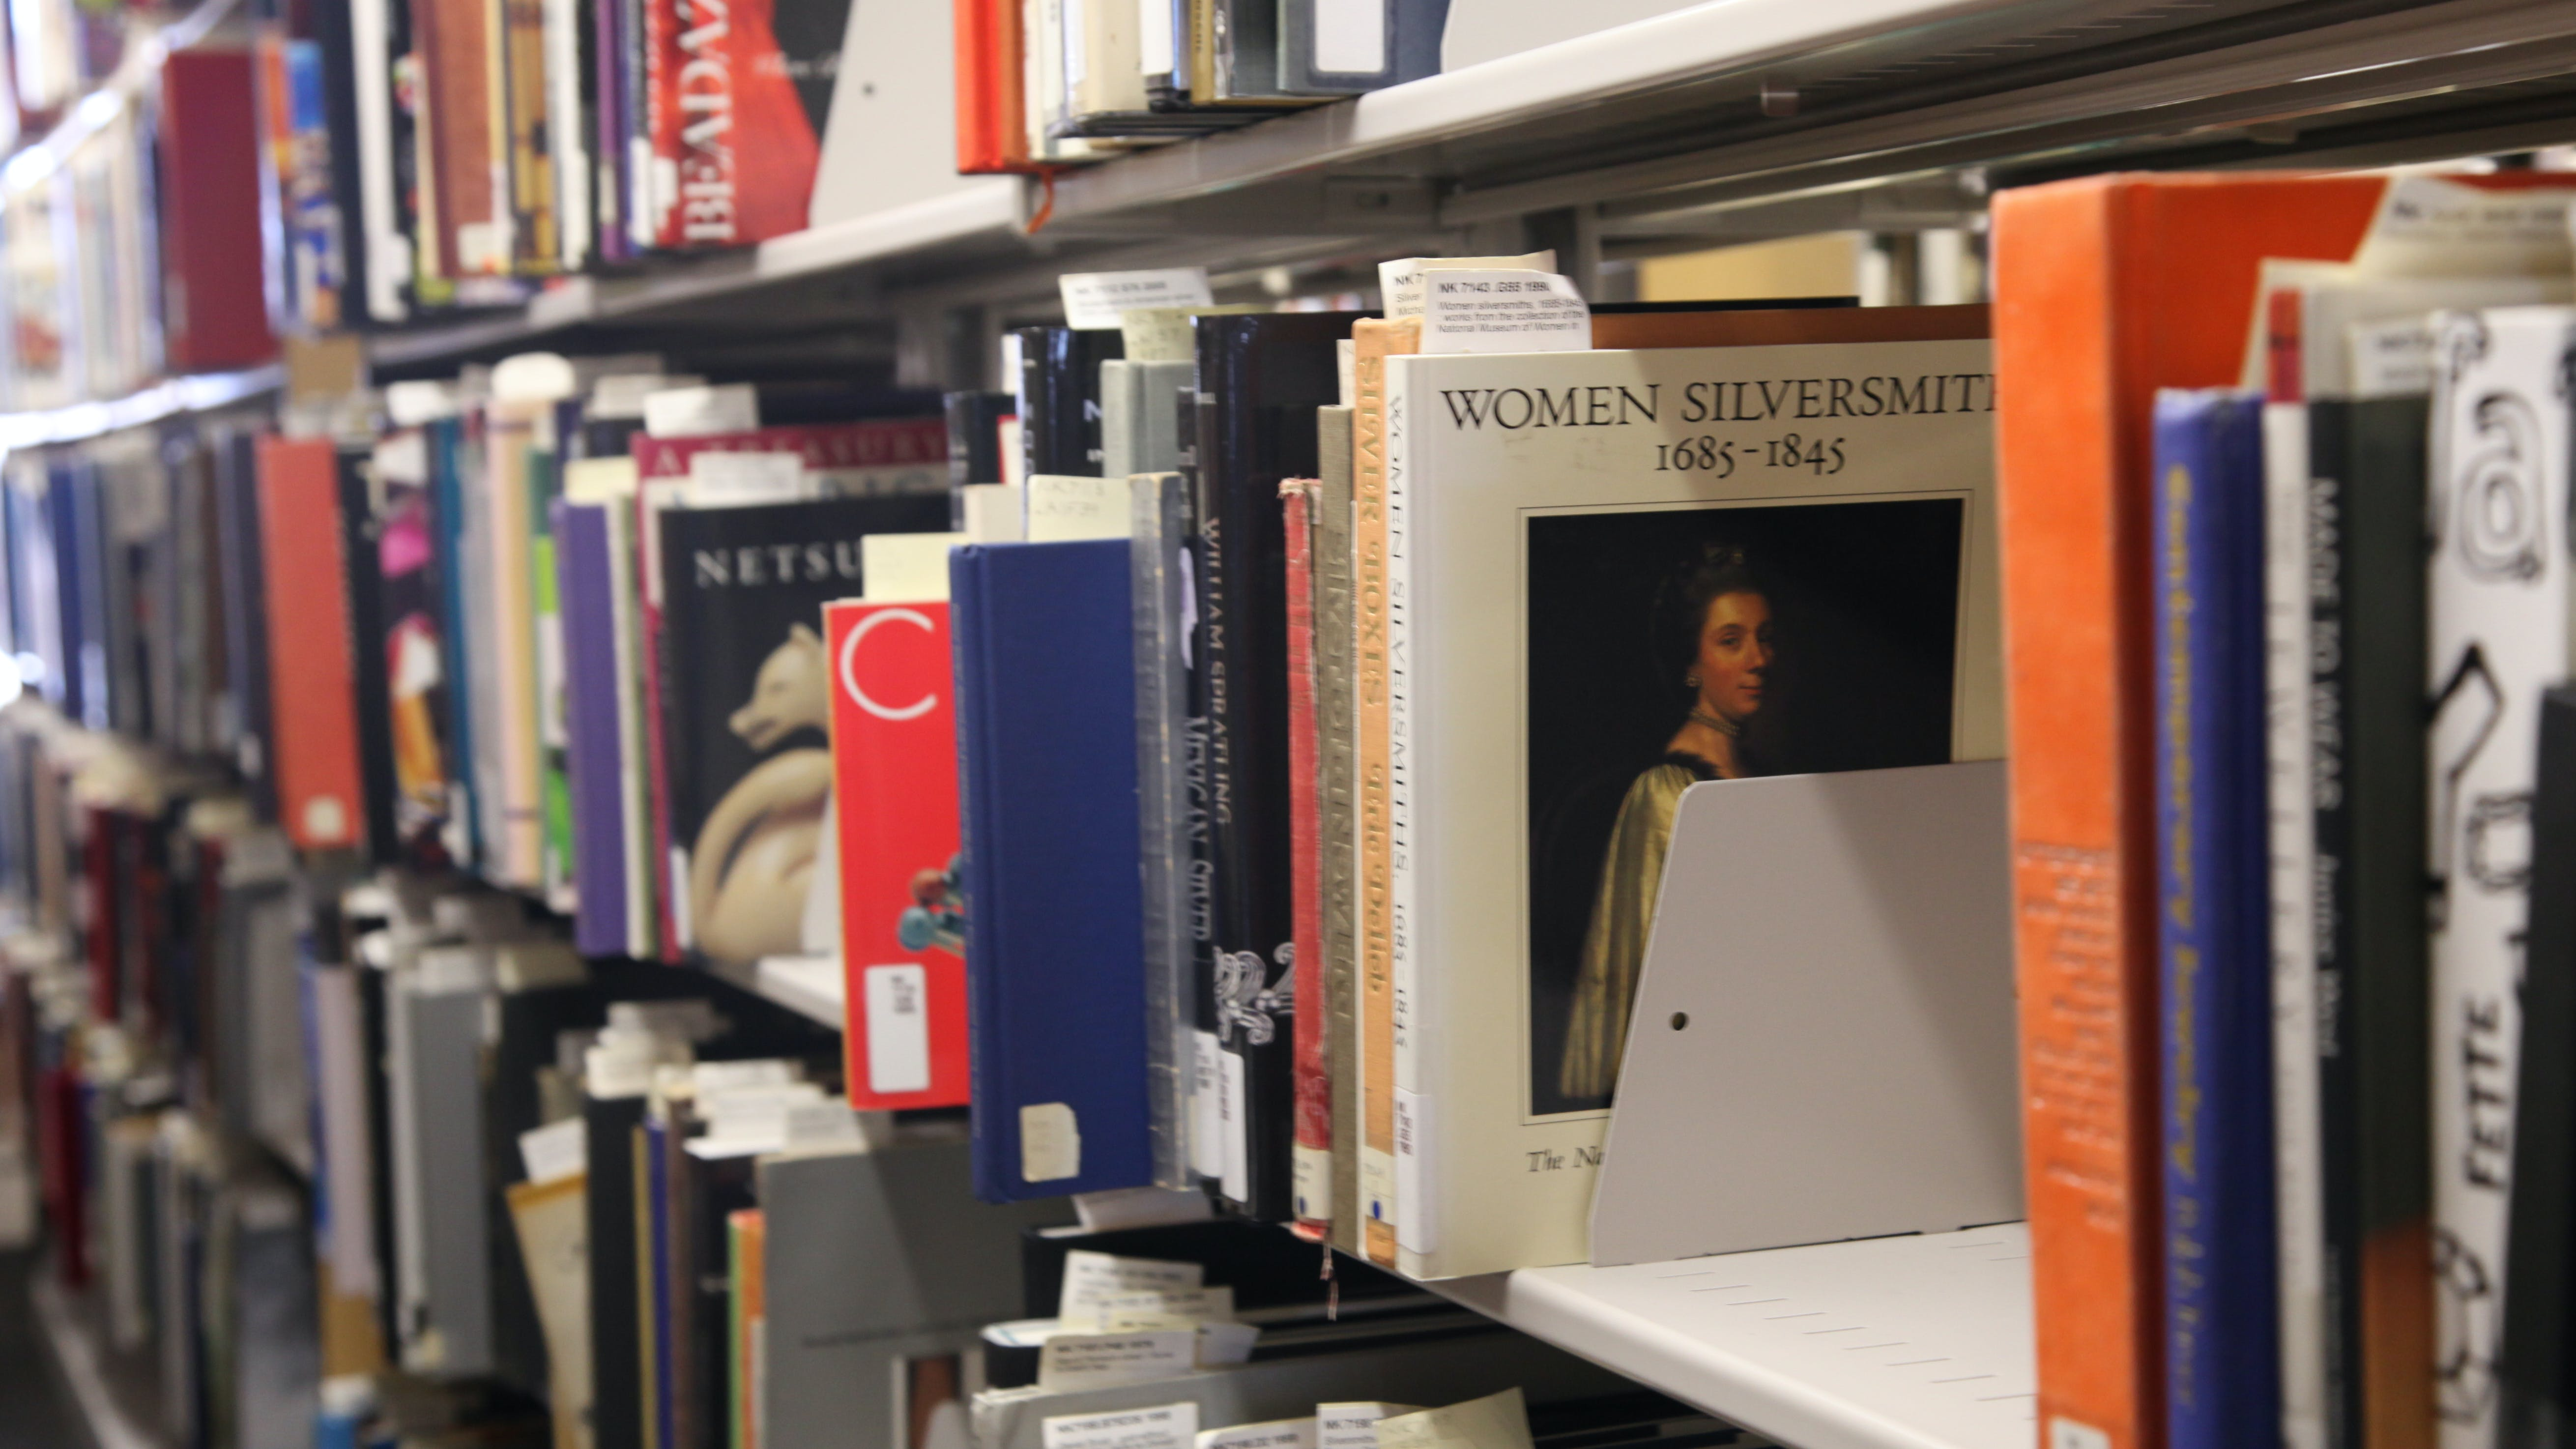 Shelf of books in the ACC Library